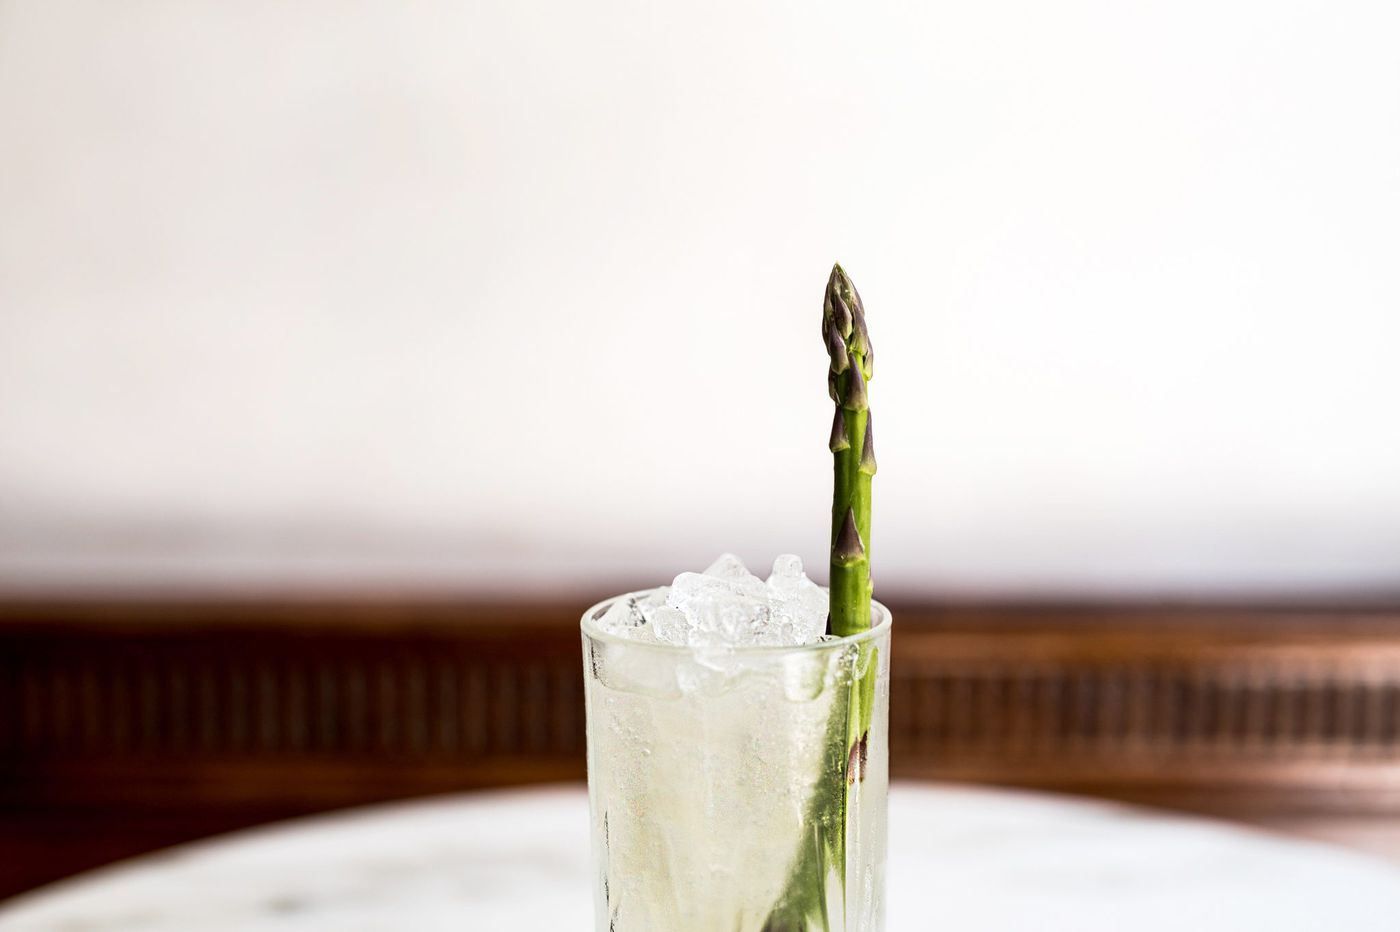 Garden-inspired cocktails bring veggies from the kitchen to the bar